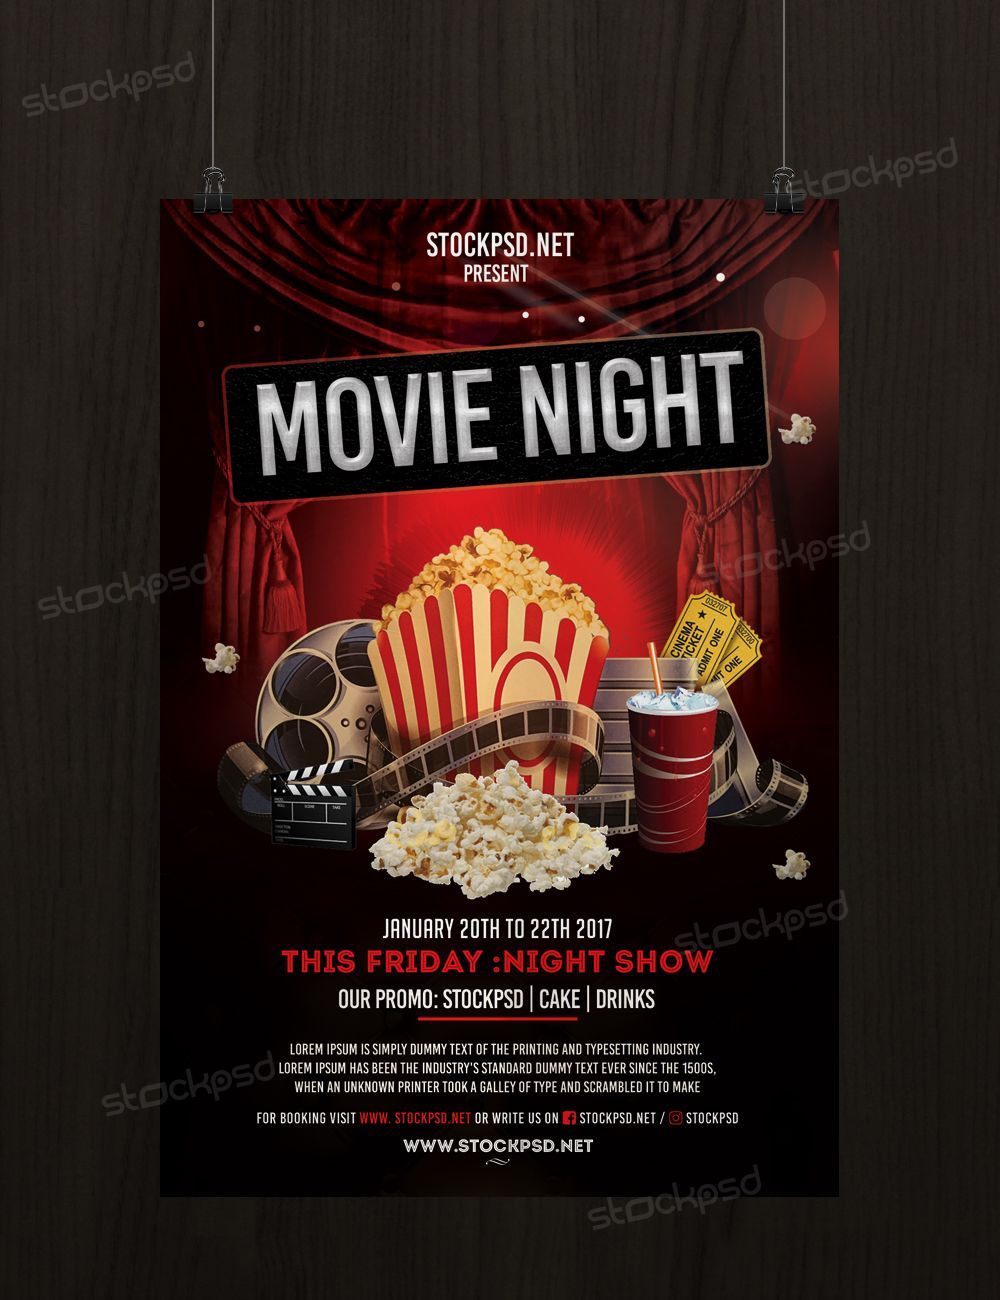 006 Marvelou Movie Night Flyer Template Highest Clarity  Templates Free Microsoft WordFull